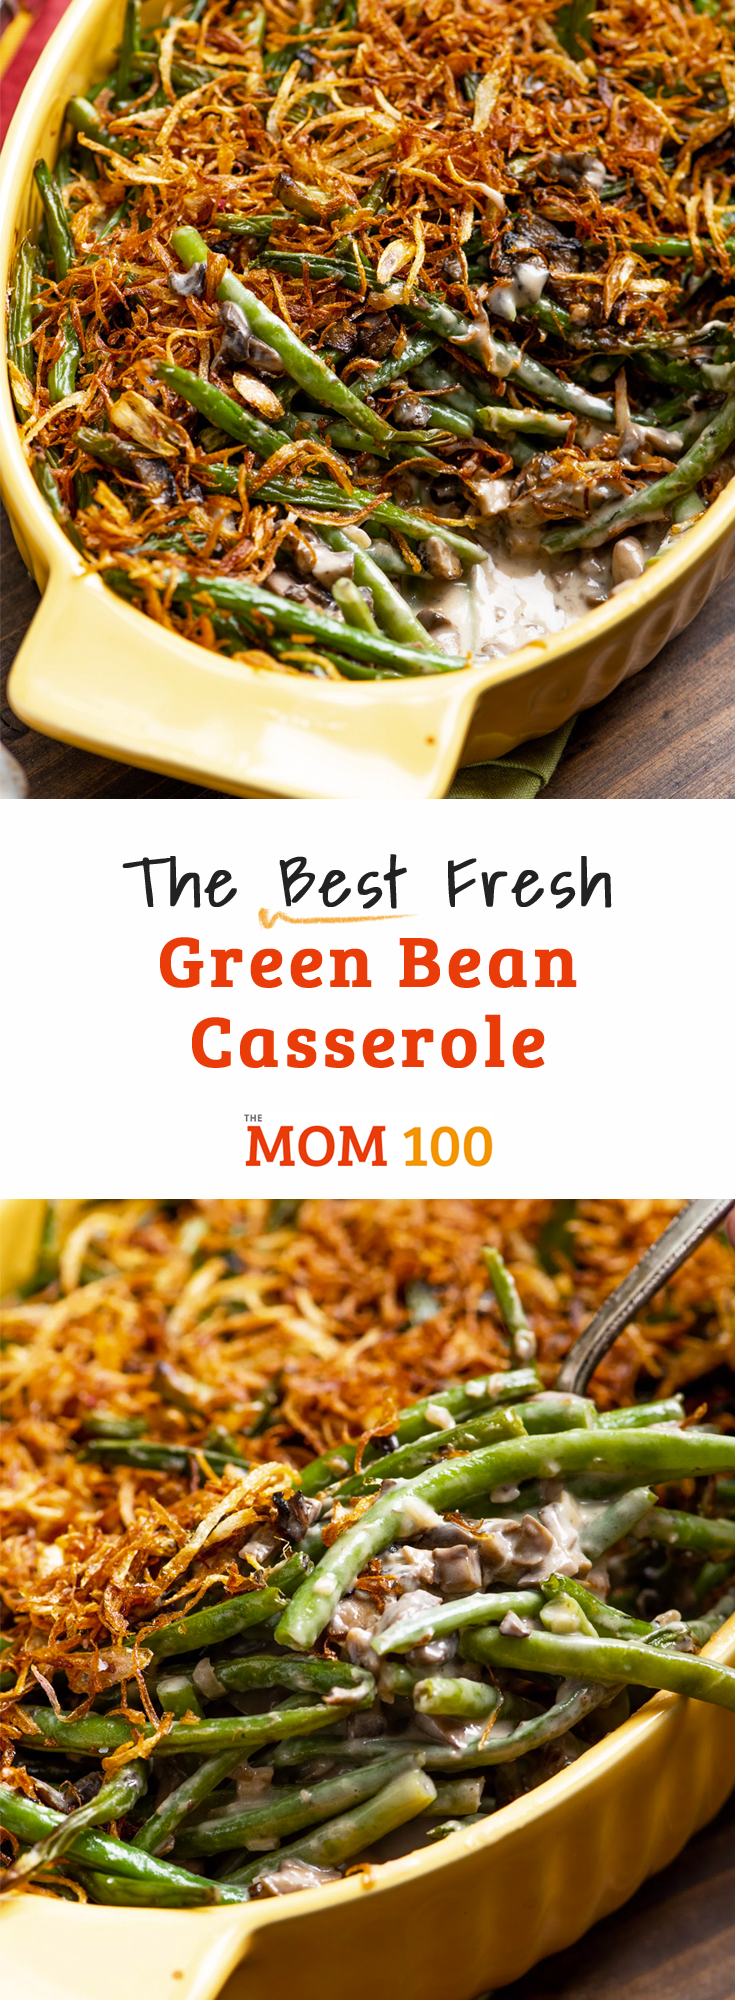 Best Fresh Green Bean Casserole (from Scratch!): No more canned soup and fried onions, this is a fresh take on one of everyone's favorite nostalgic holiday side dishes. #greenbeancasserole #greenbeans #thanksgivinggreenbeans #stringbeancasserole